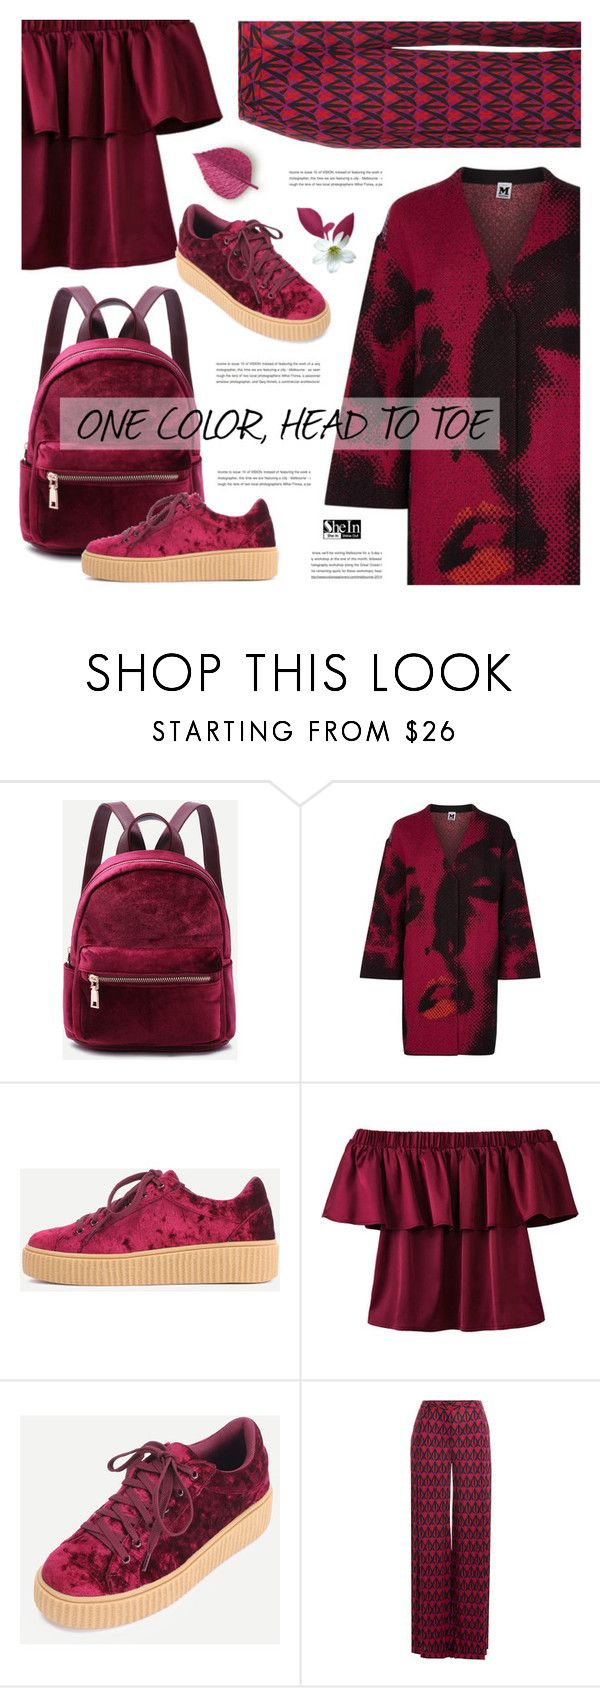 """One Color, Head to Toe"" by defivirda ❤ liked on Polyvore featuring M Missoni and Diane Von Furstenberg"